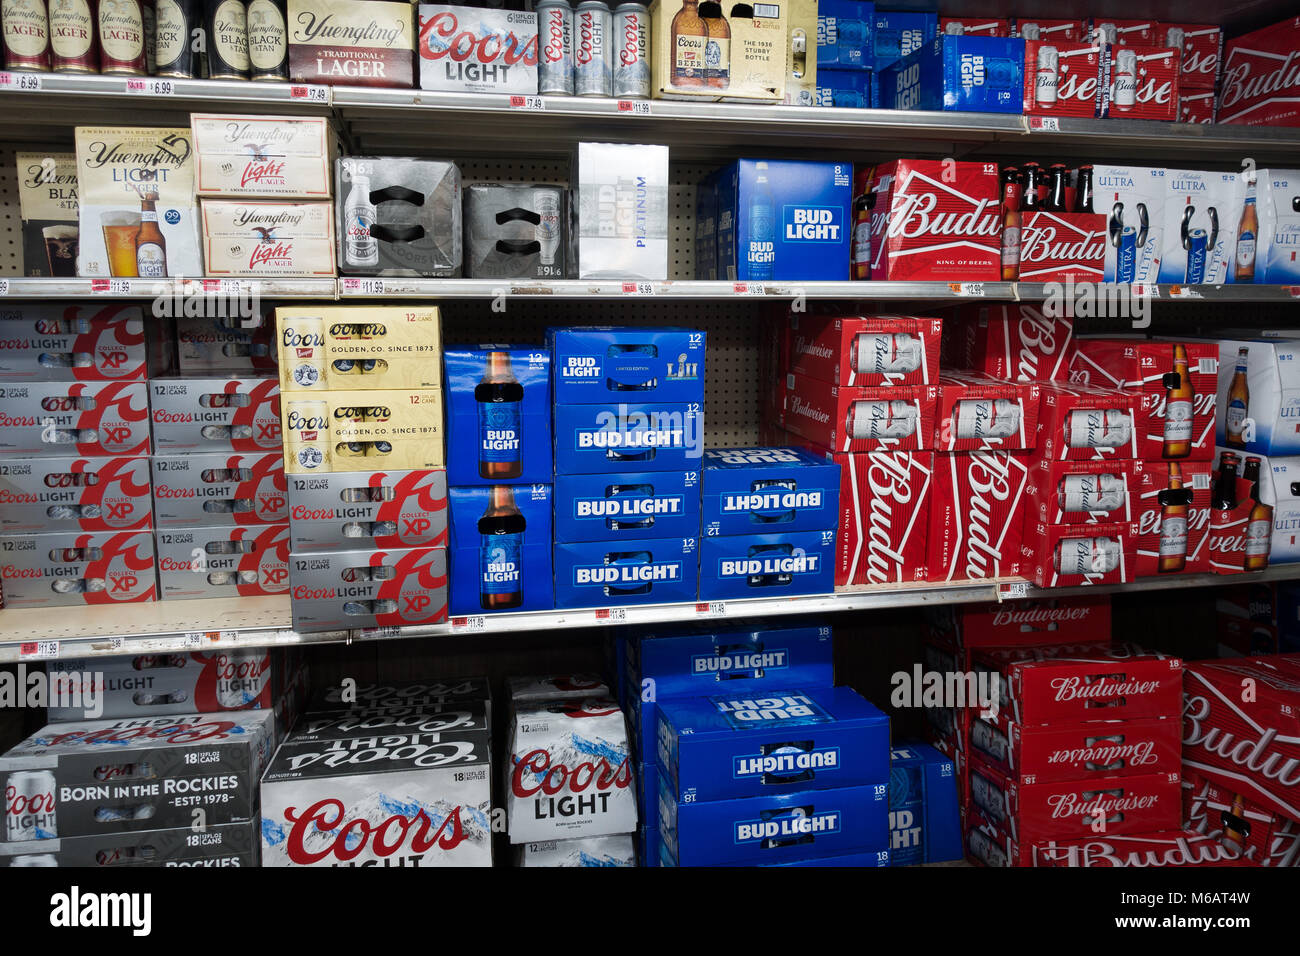 A Walk In Cooler Or Beer Cave Grocery Store Speculator